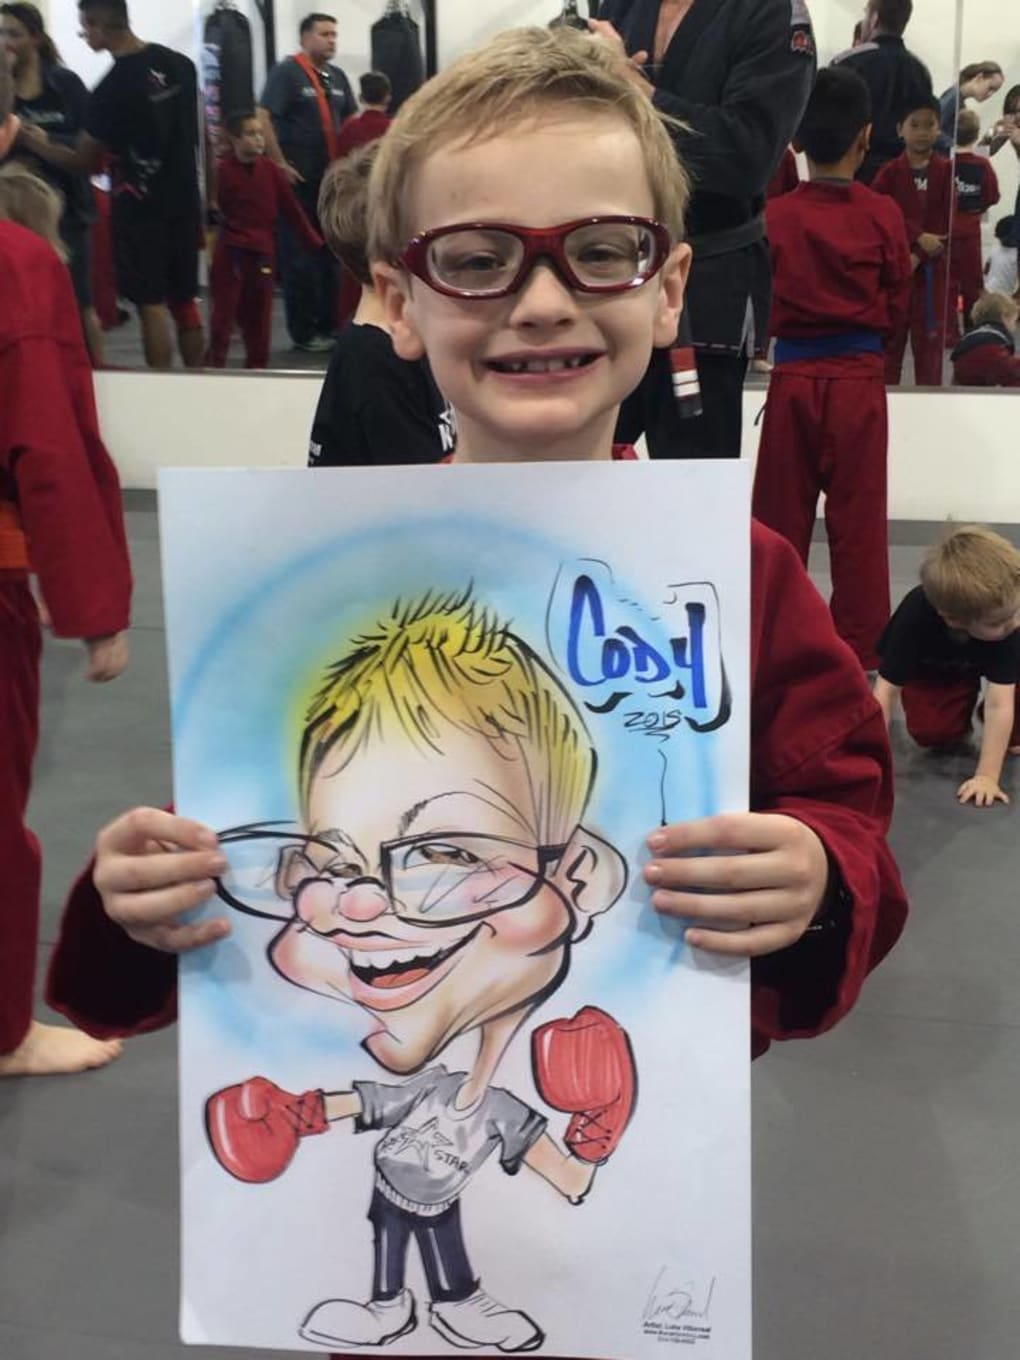 Kids Martial Arts in Frisco - Rockstar Martial Arts and Fitness - RockStar of the Year